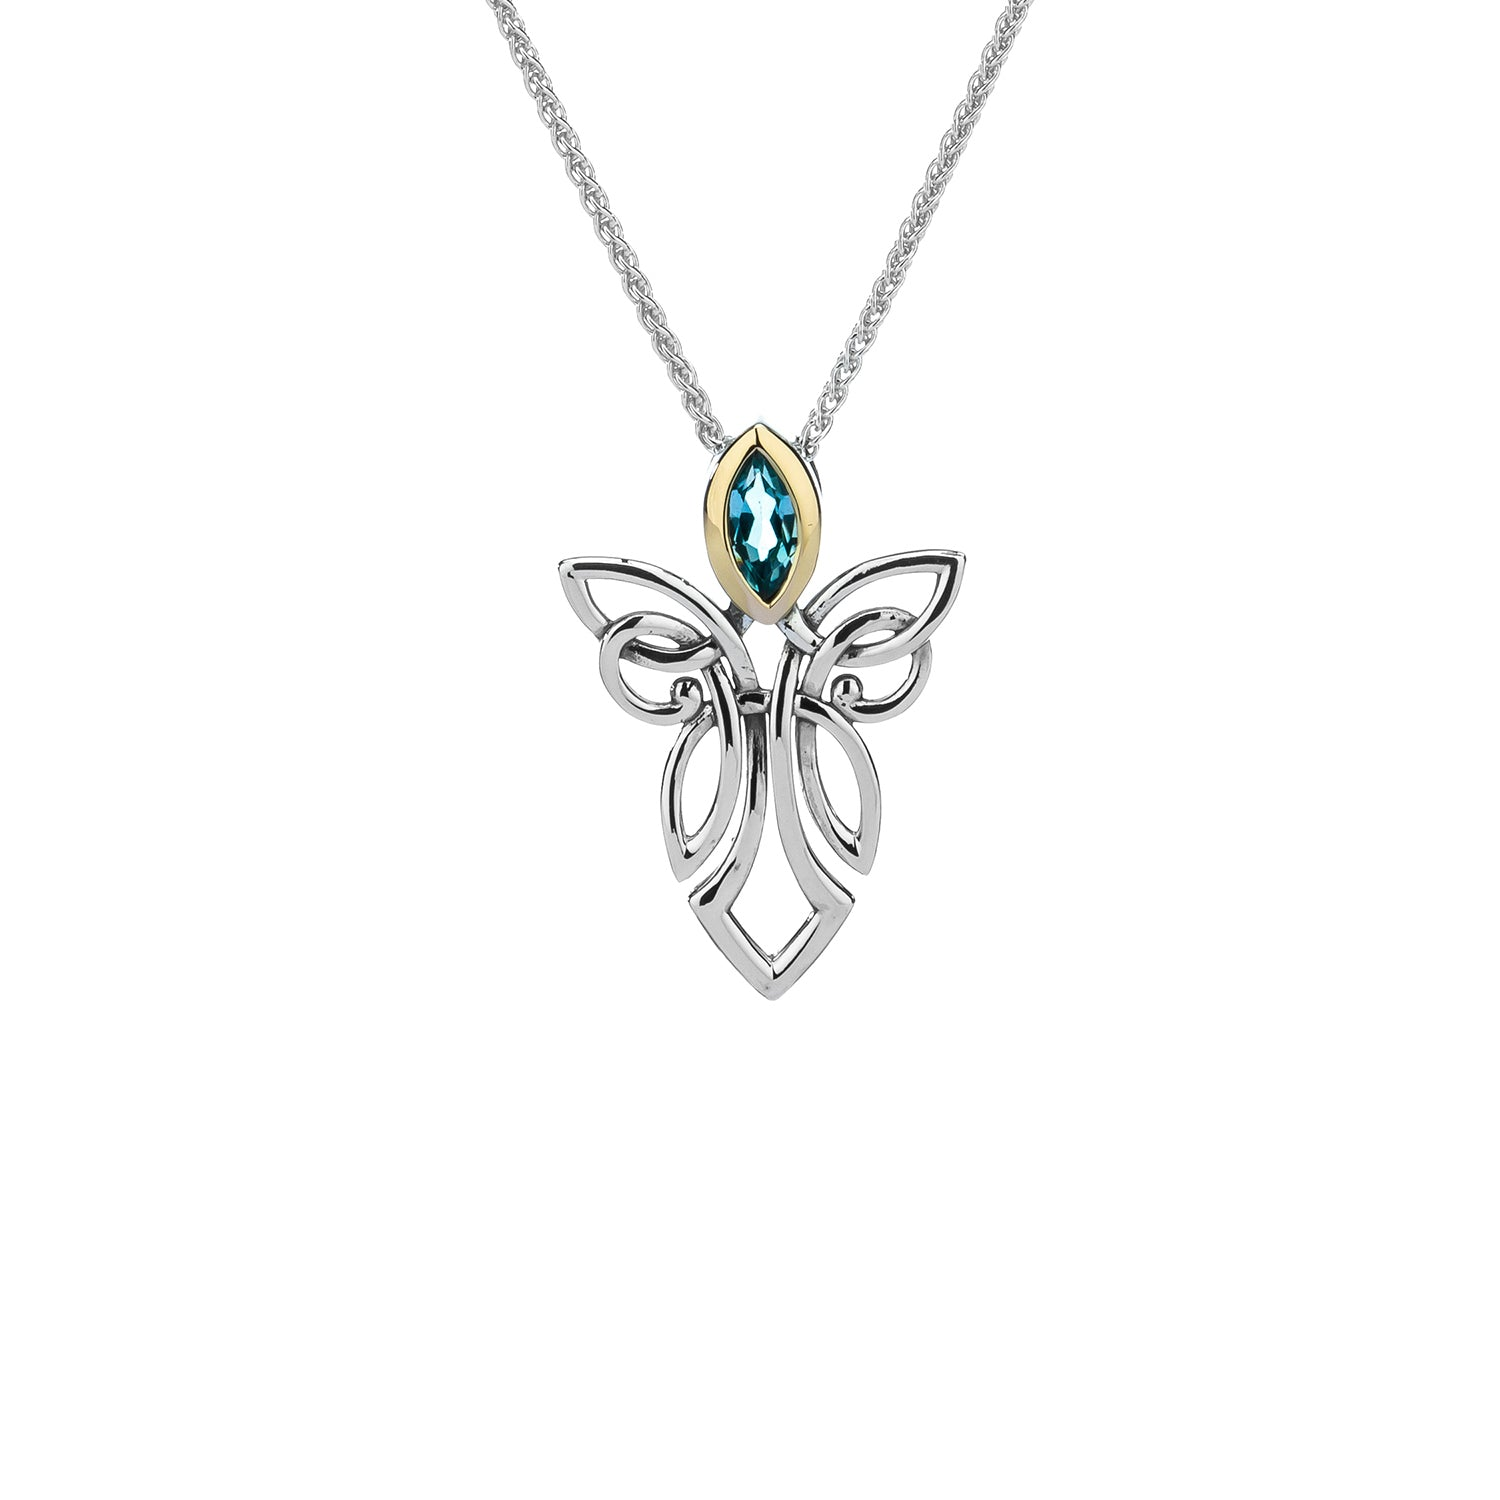 Pendant 10k Sky Blue Topaz Guardian Angel Pendant from welch and company jewelers near syracuse ny